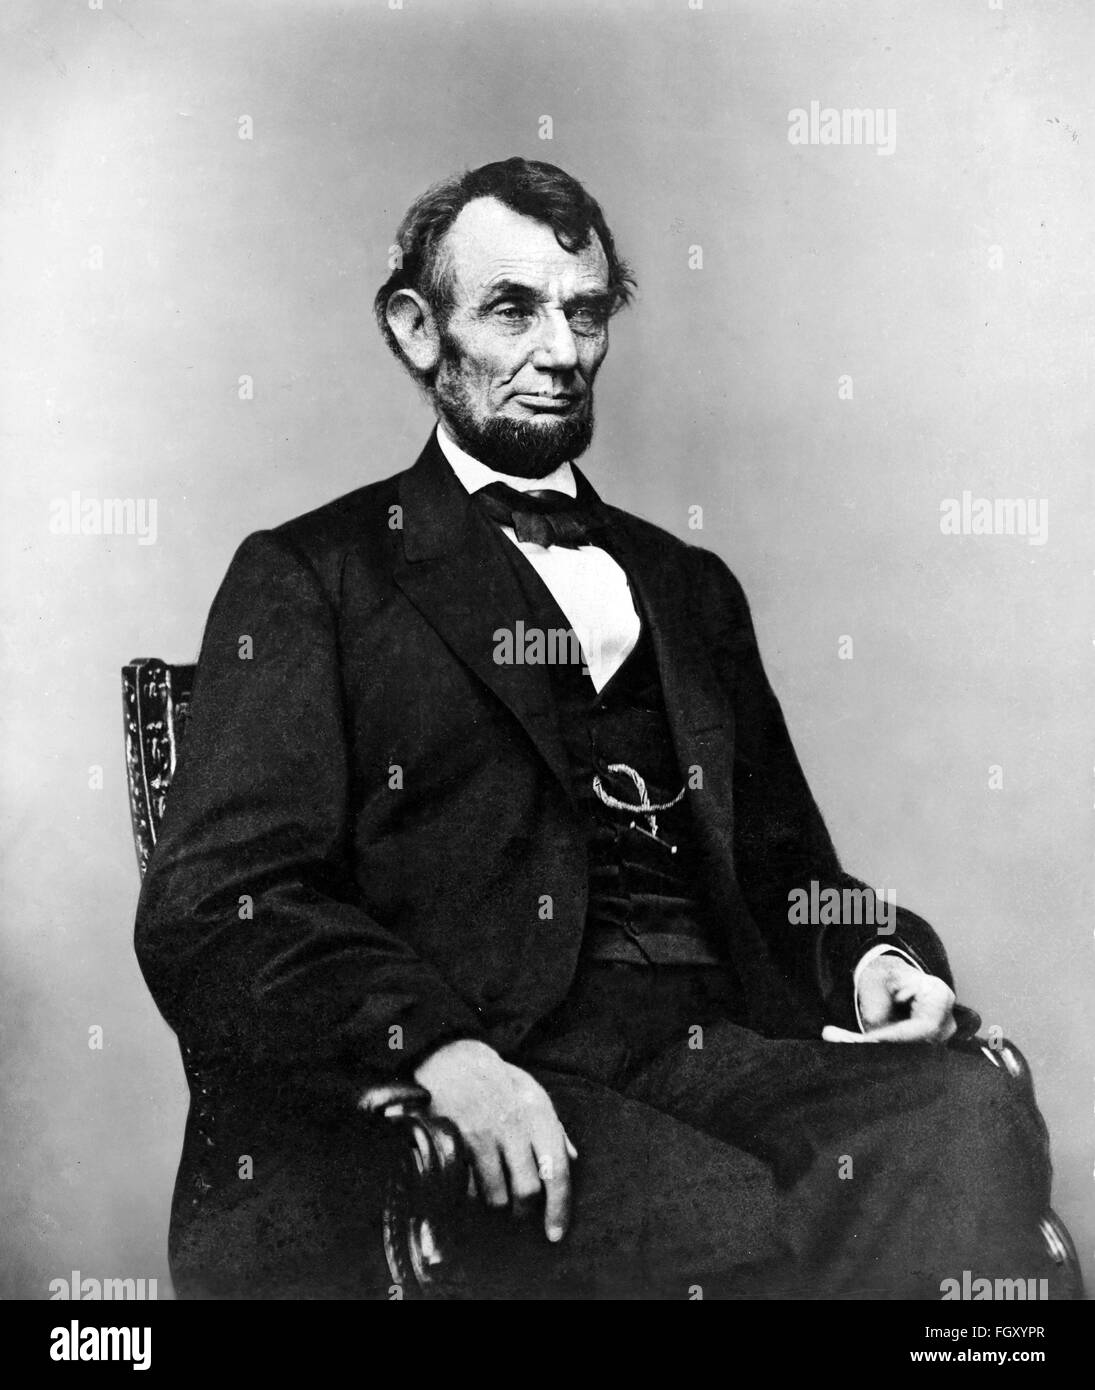 Photographic portrait of US President Abraham Lincoln in 1864 - Stock Image